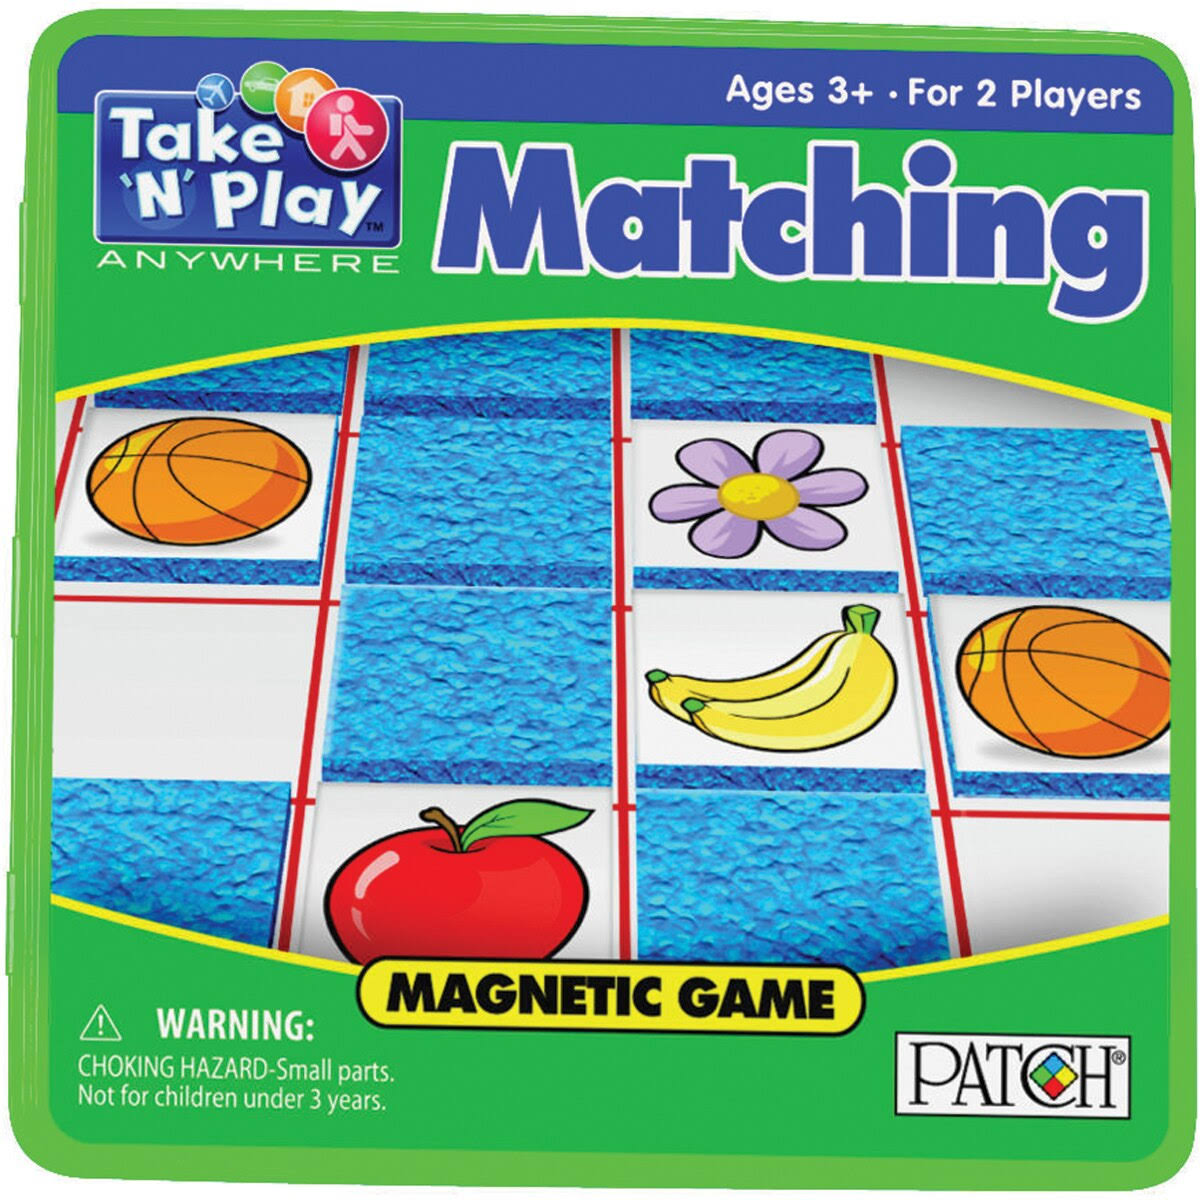 Take N Play Anywhere Matching Magnetic Game